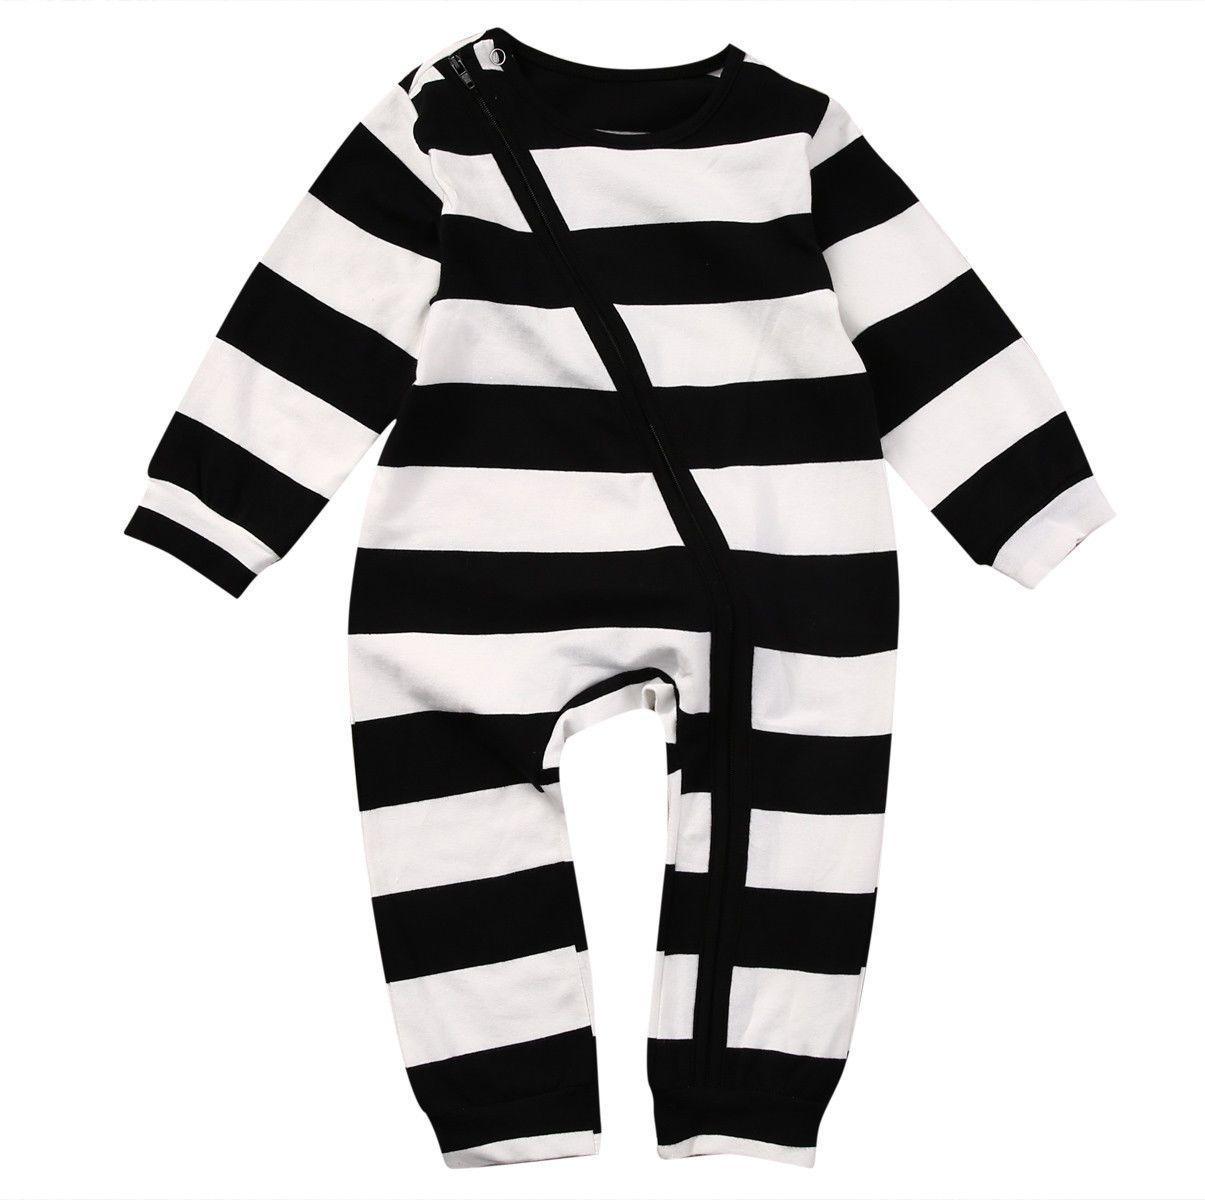 4a229a48871b 2017 new arrival Baby Boy Clothes Cotton Striped baby Romper long ...